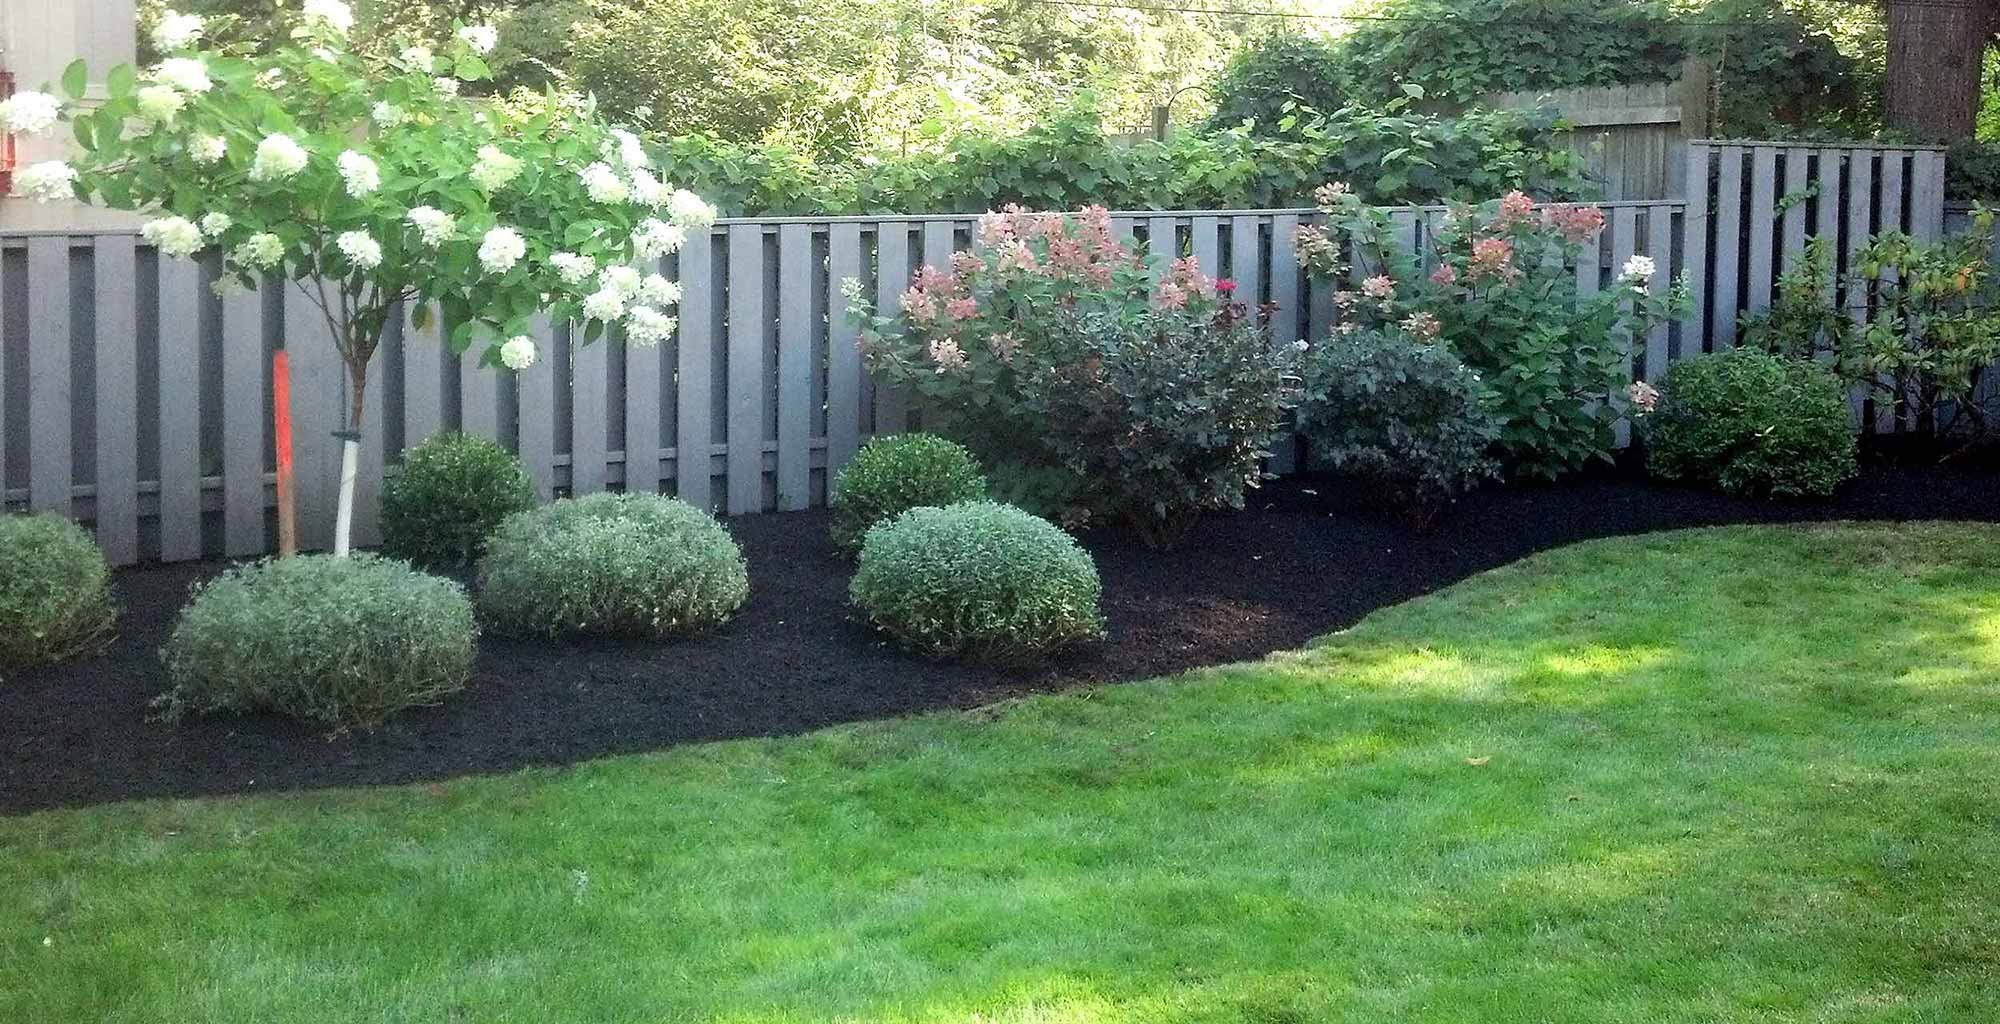 Irondequoit Landscape - Lawn Care & Maintenance, Spring/Fall clean-ups, mowing, shrub & tree pruning, mulching, weeding & bed edging, lawn re-seeding, lawn core aeration, lawn de-thatching in Rochester, NY.